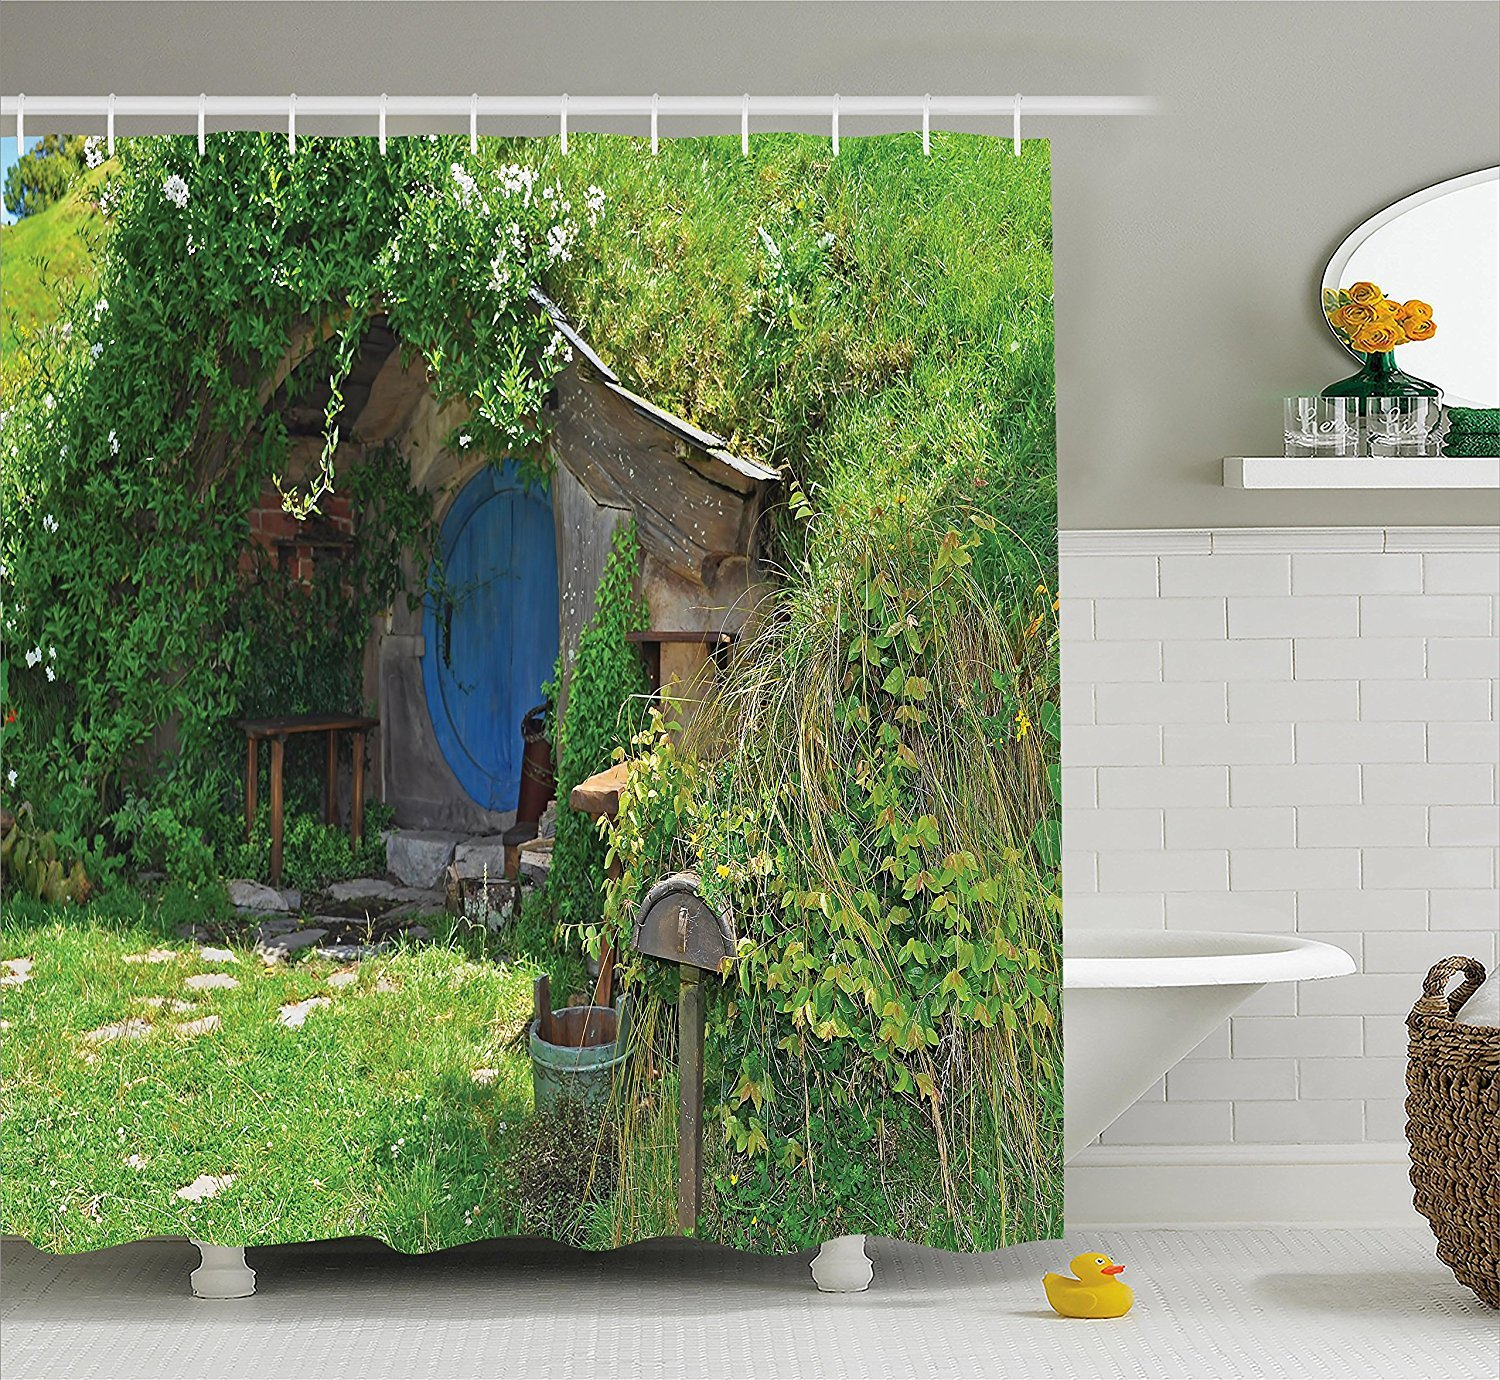 Mirryderr Hobbits Shower Curtain Set, Fantasy Hobbit Land House in Magical Overhill Woods Movie Scene Image New Zealand, Fabric Bathroom Decor with Hooks, Green Brown Blue